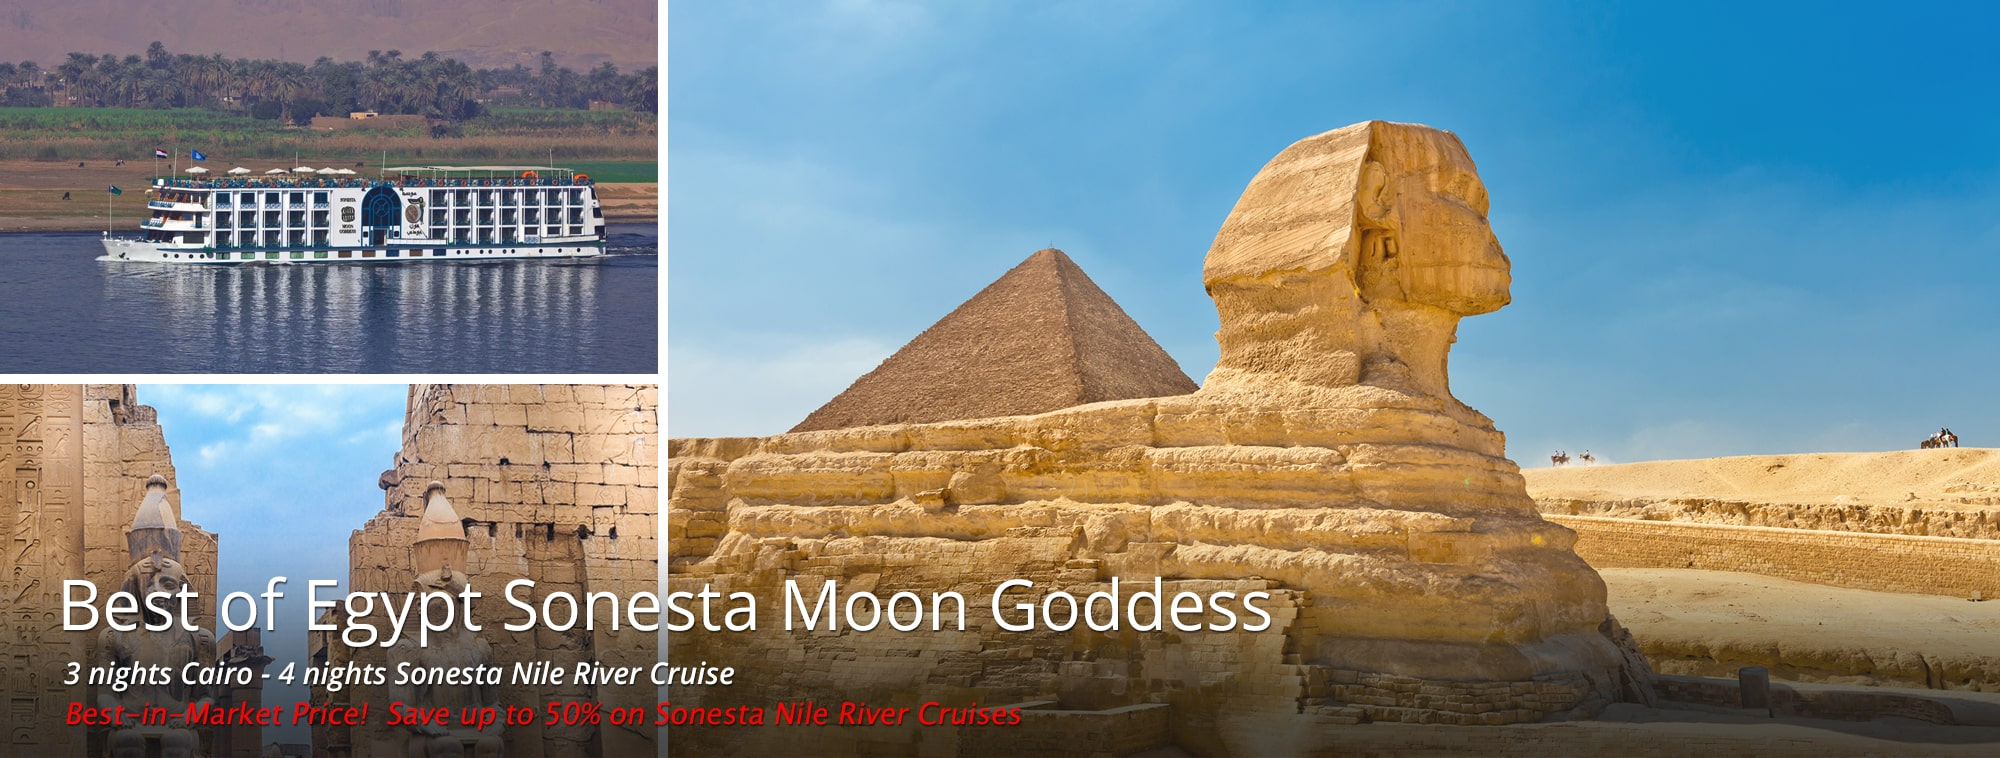 Best of Egypt Sonesta Moon Goddess Tour